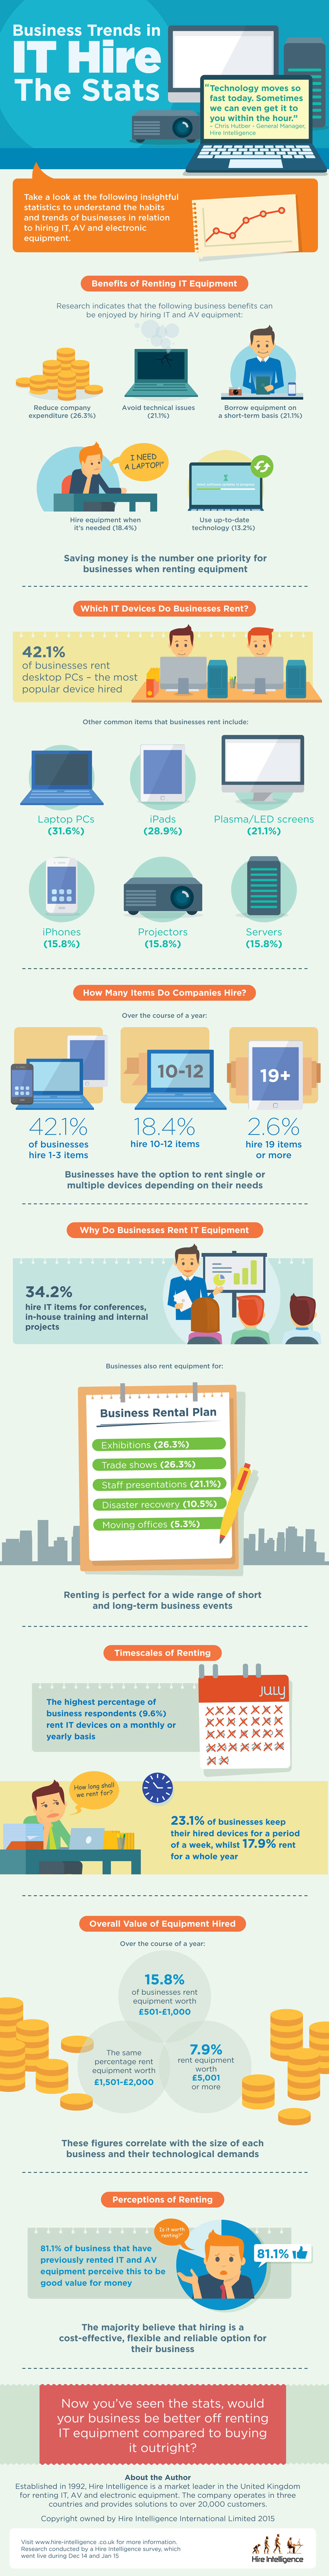 [INFOGRAPHIC] Business Trends in IT Hire